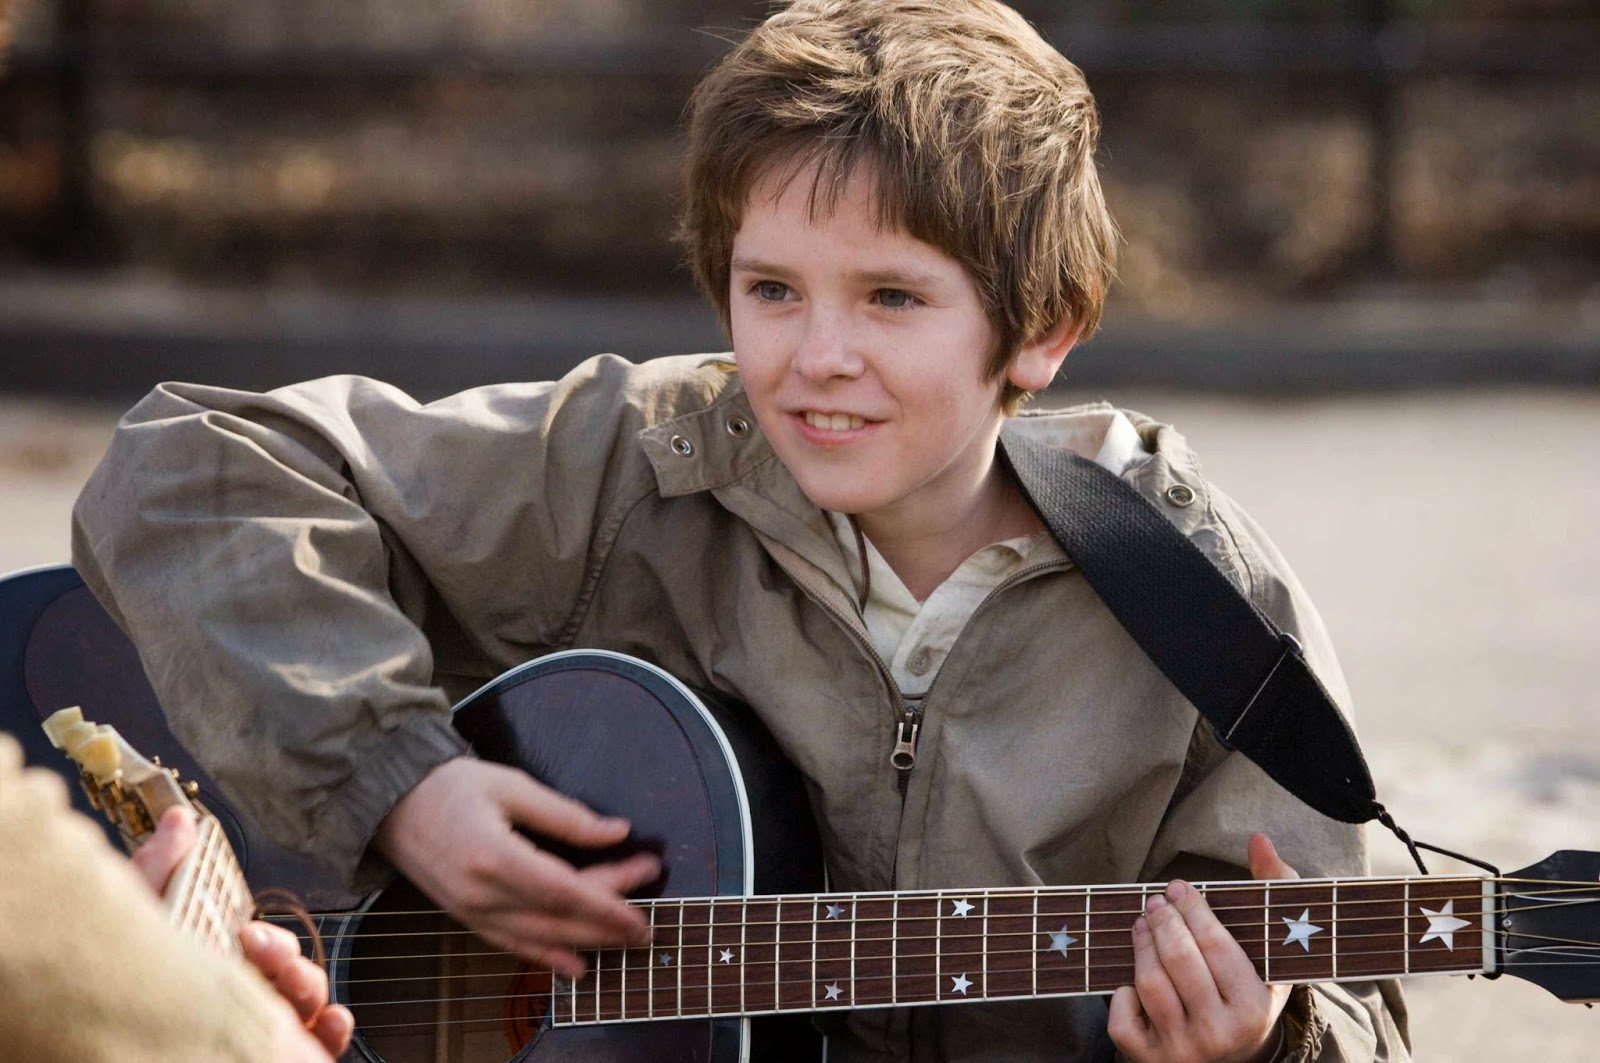 movie august rush based on true story